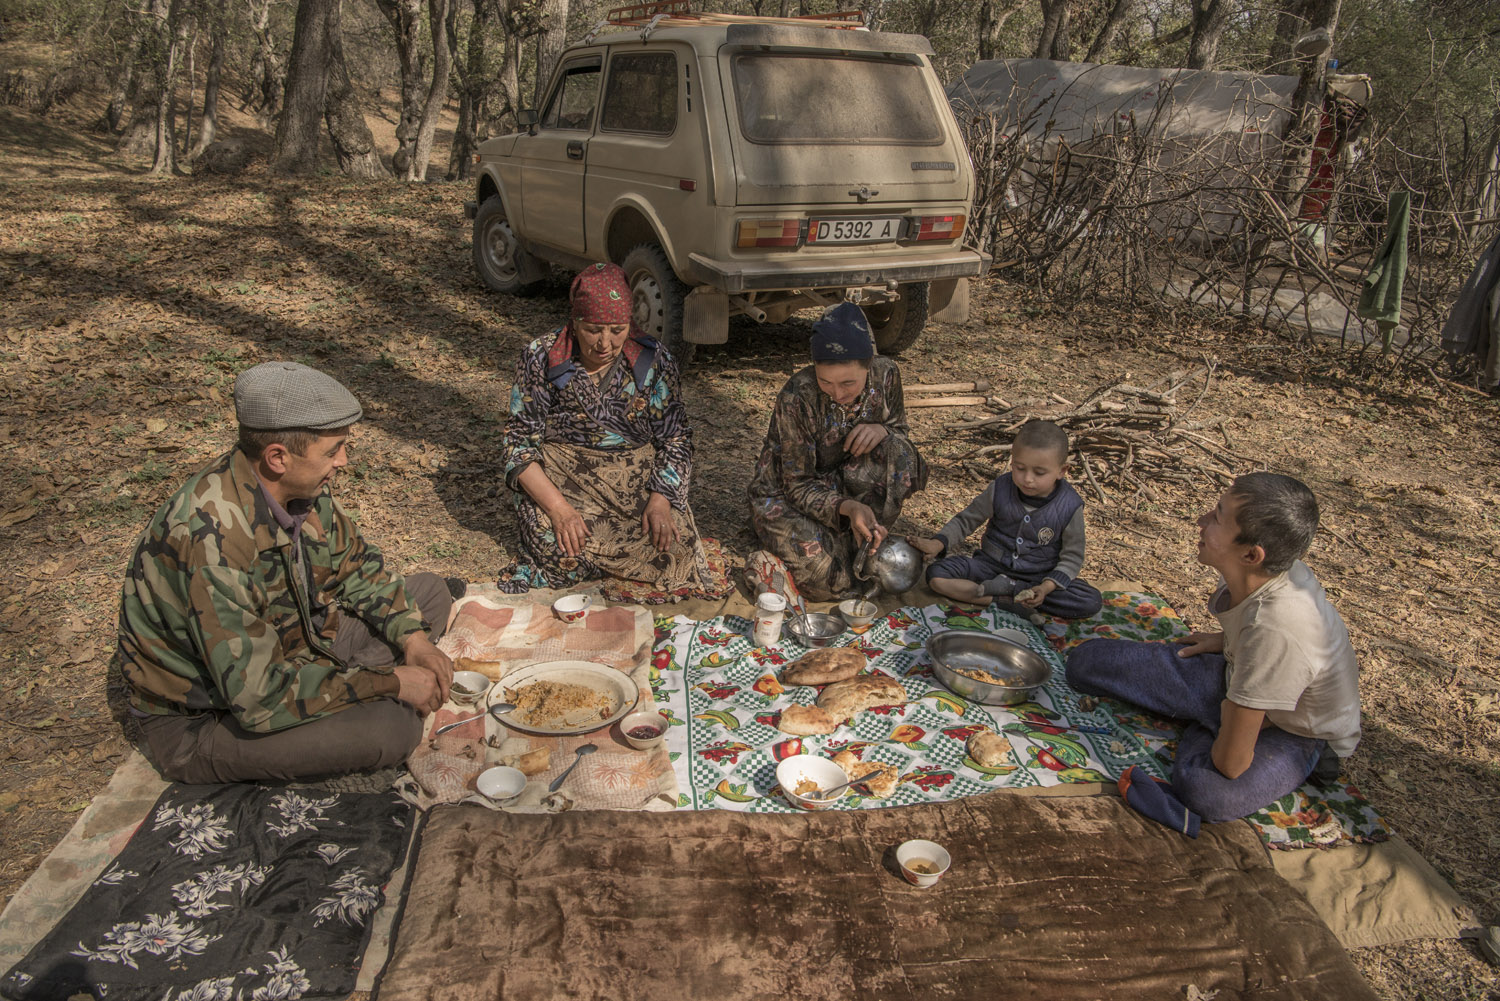 walnuts-picking-kyrgyzstan-child-arslanbob-soviet-union-russia-picnic-camping-family-forest.jpg